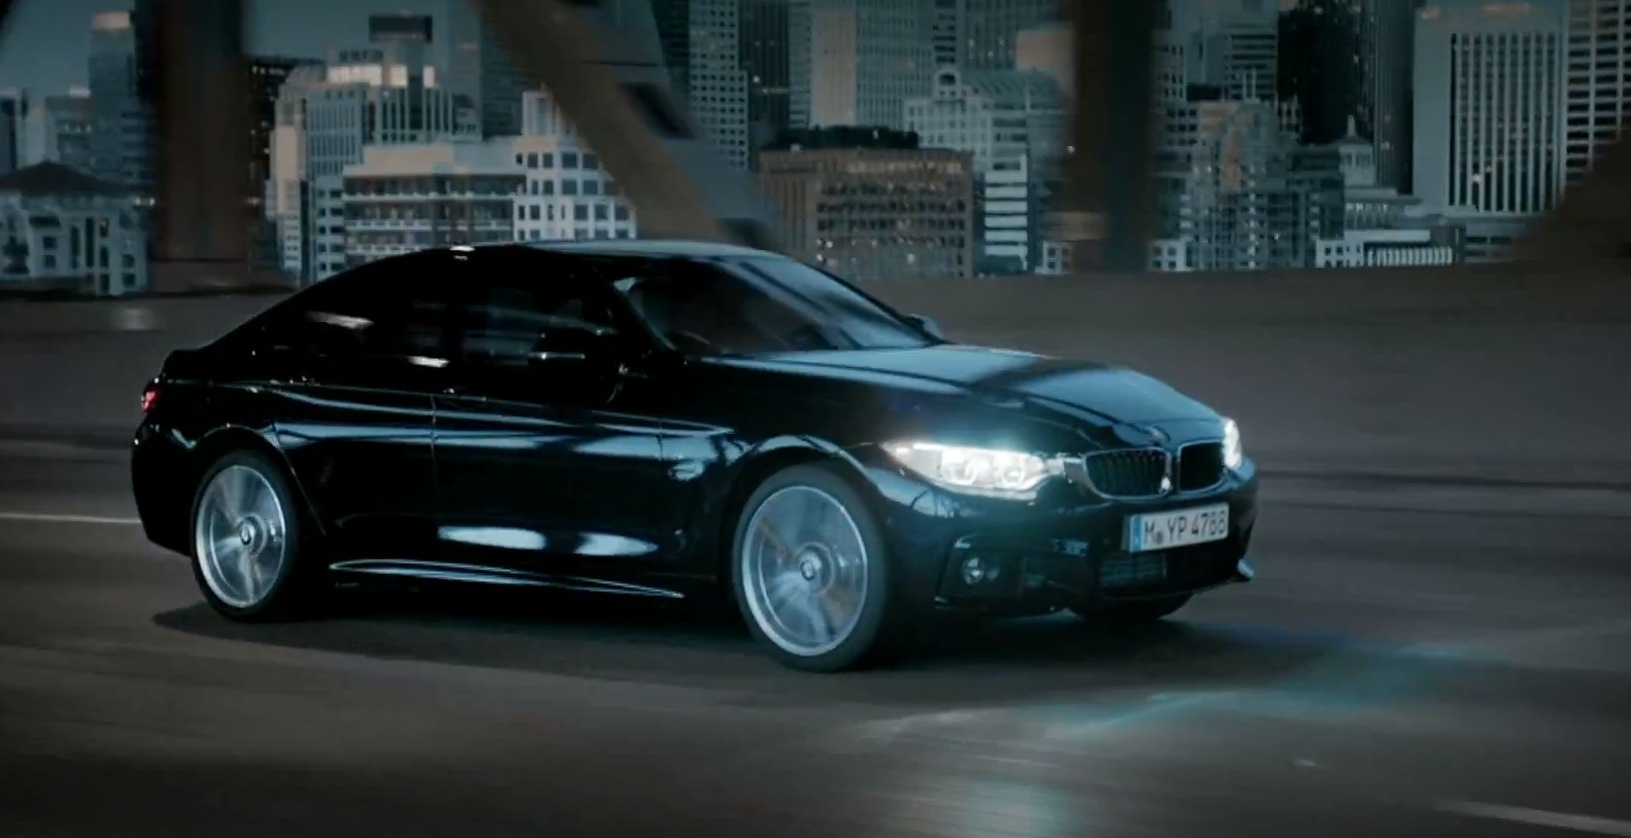 bmw 4 series gran coupe featured in elegant launchfilm autoevolution. Black Bedroom Furniture Sets. Home Design Ideas